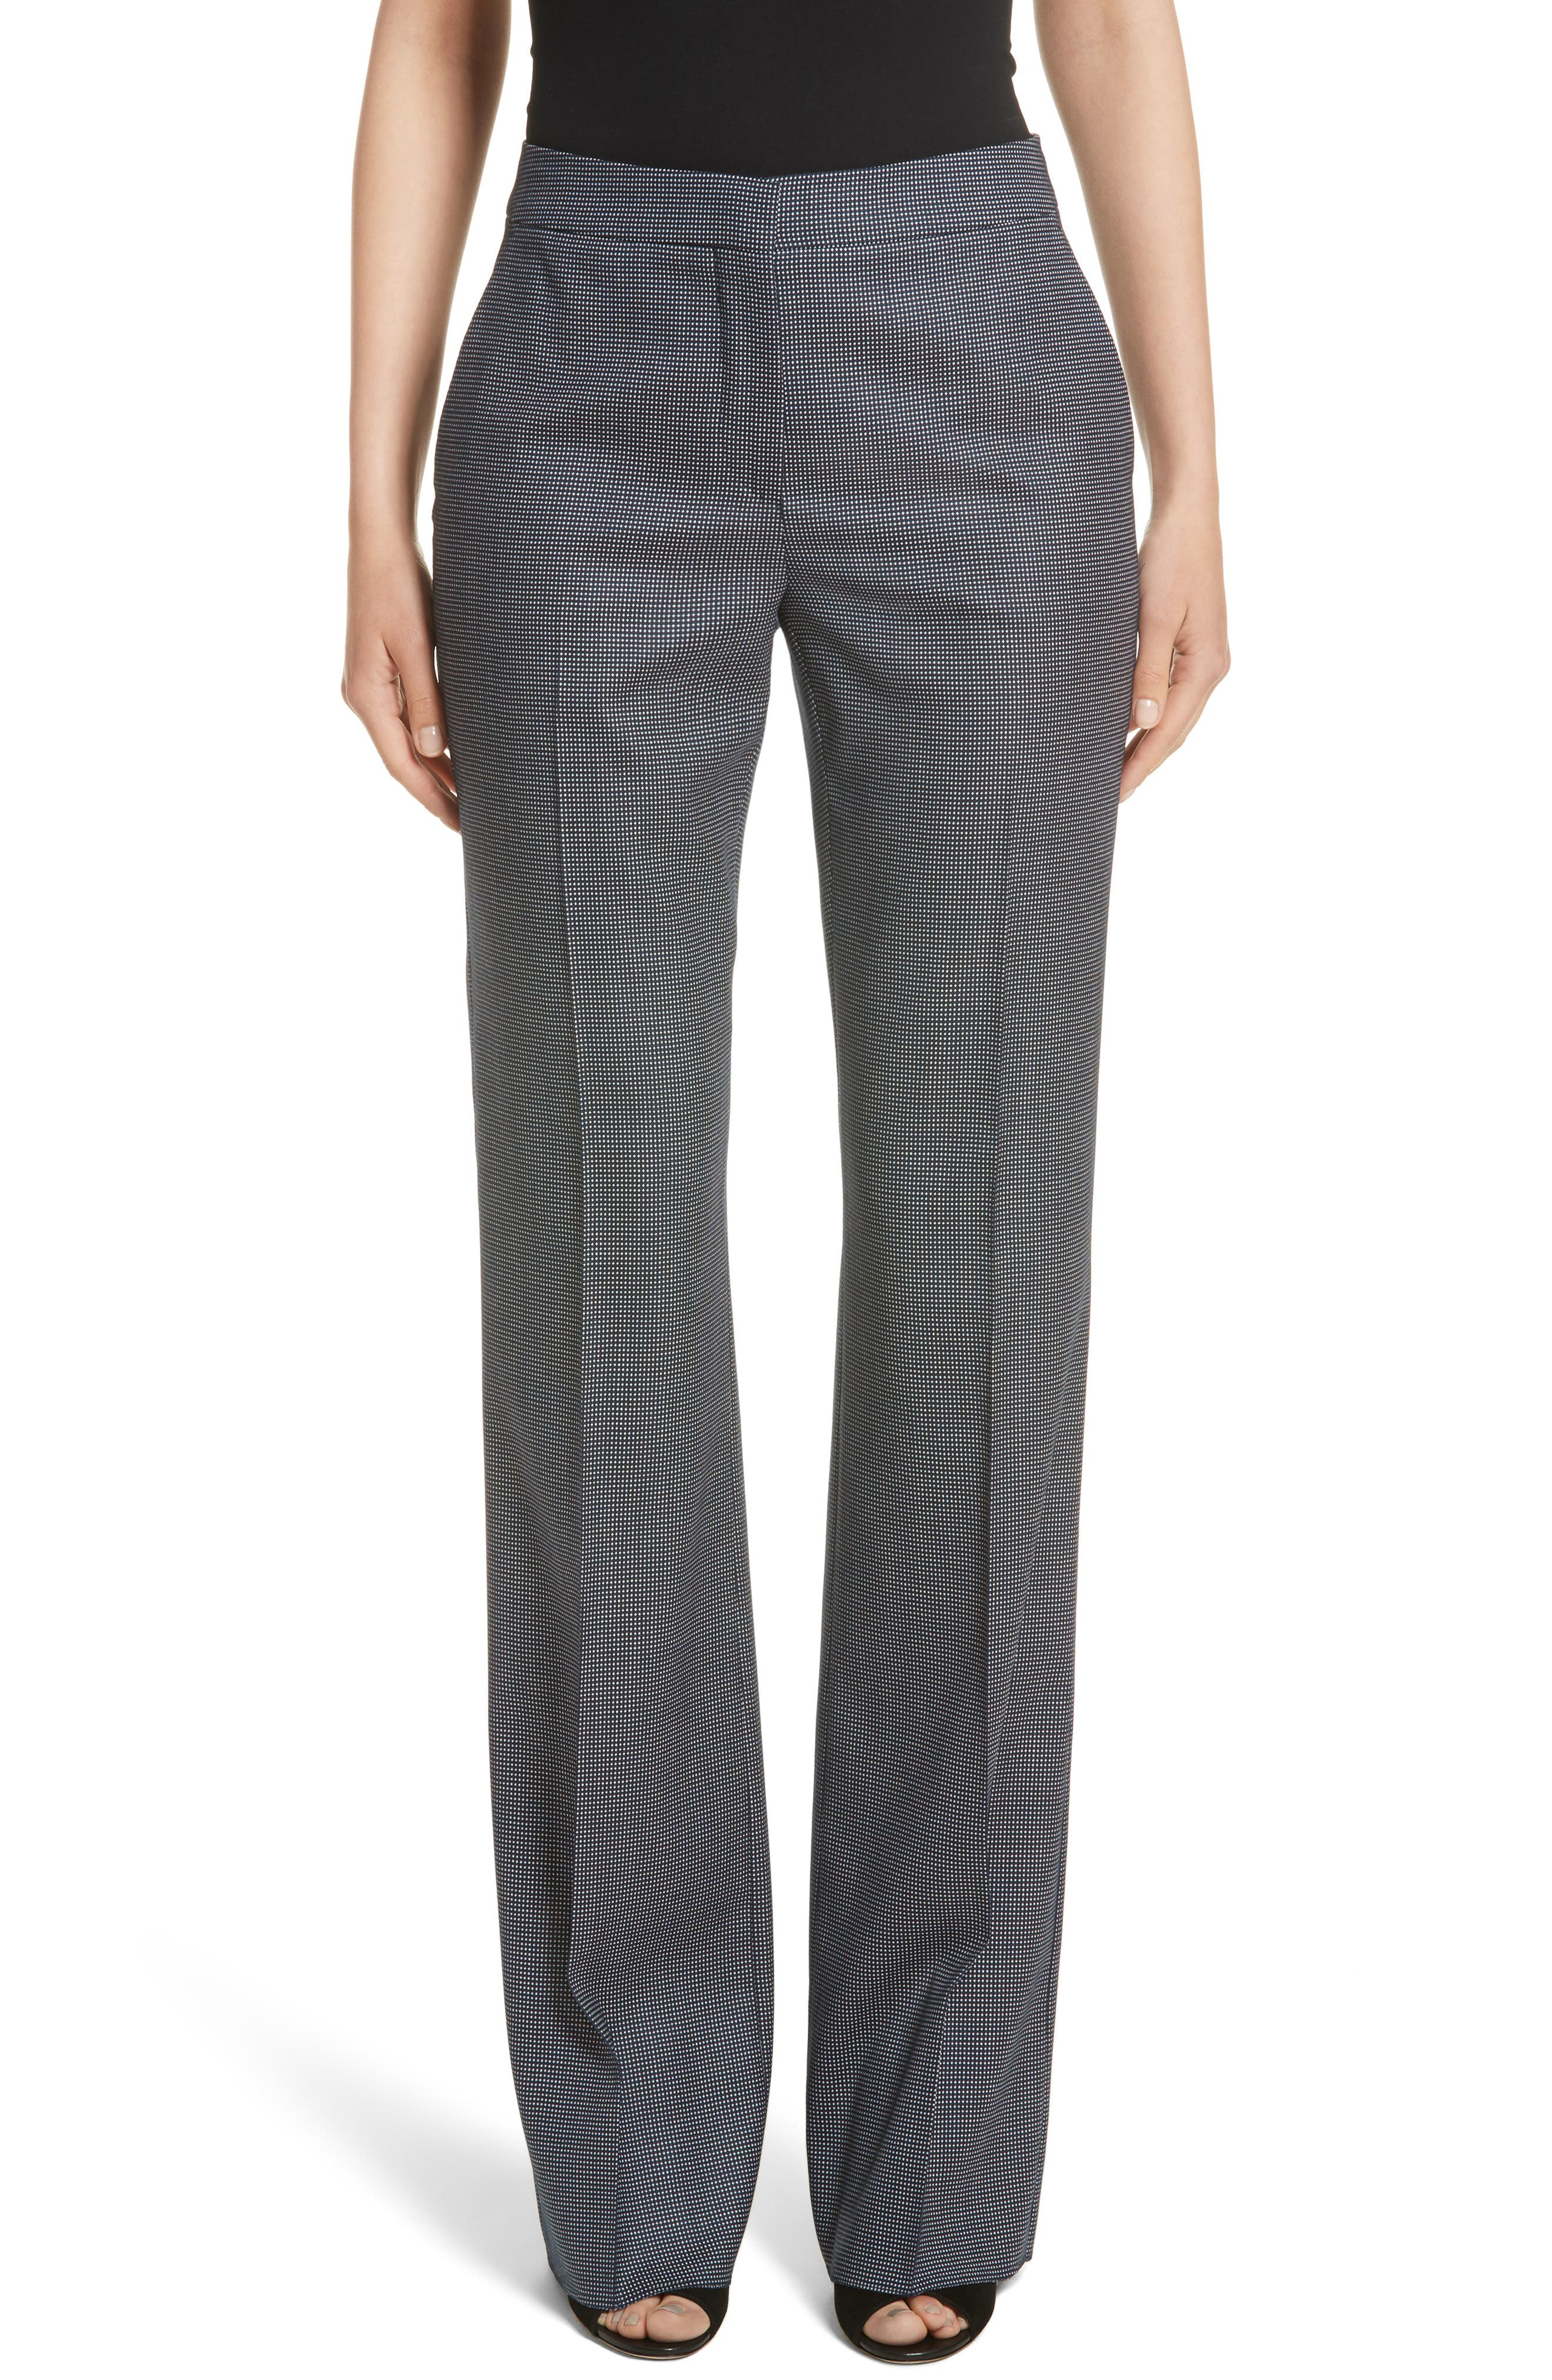 Max Mara Alessia Stretch Wool & Silk Pants (Nordstrom Exclusive)